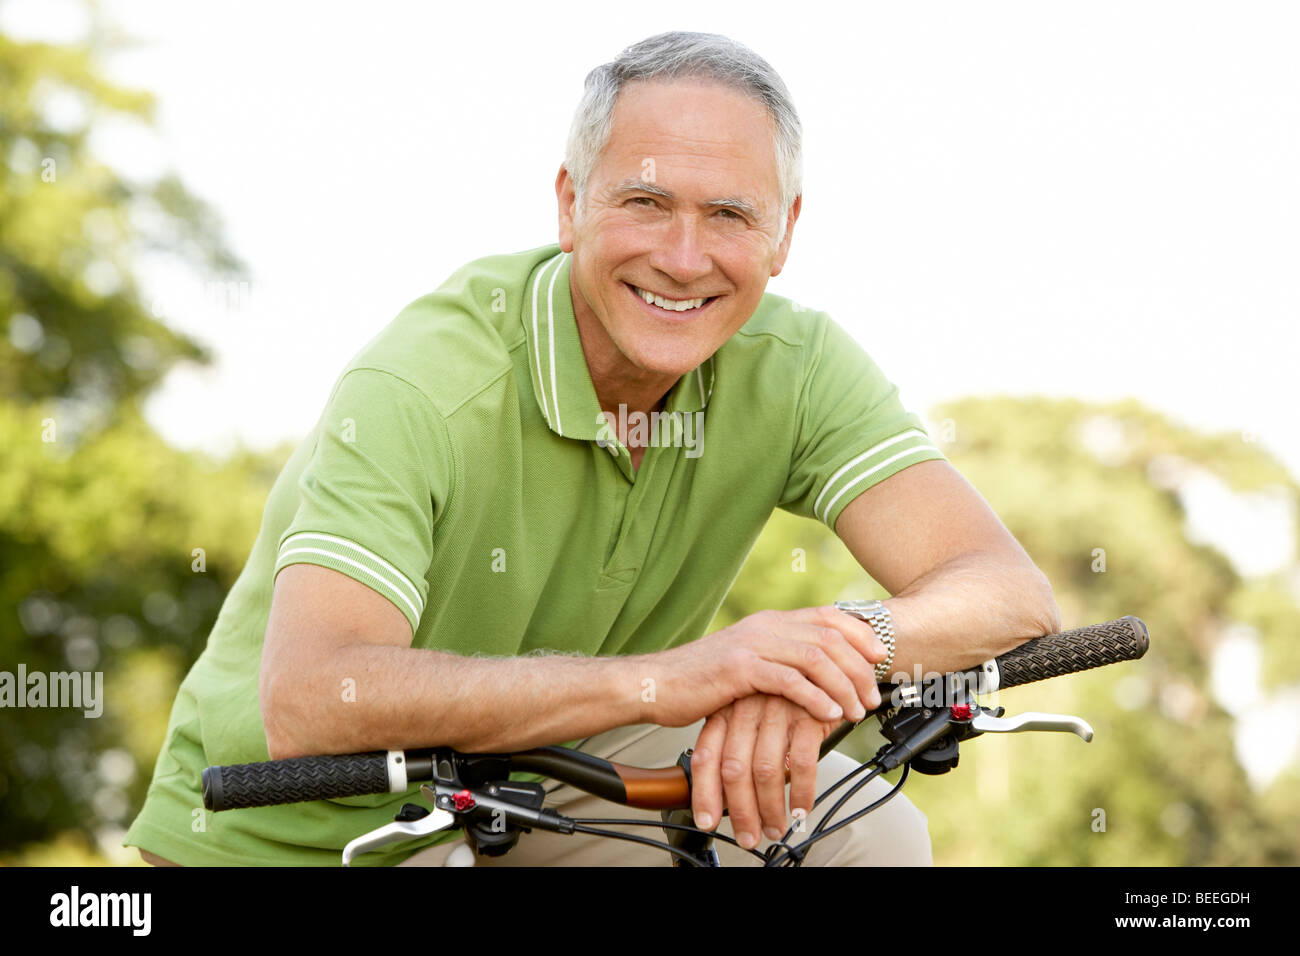 Portrait of man riding cycle in countryside - Stock Image